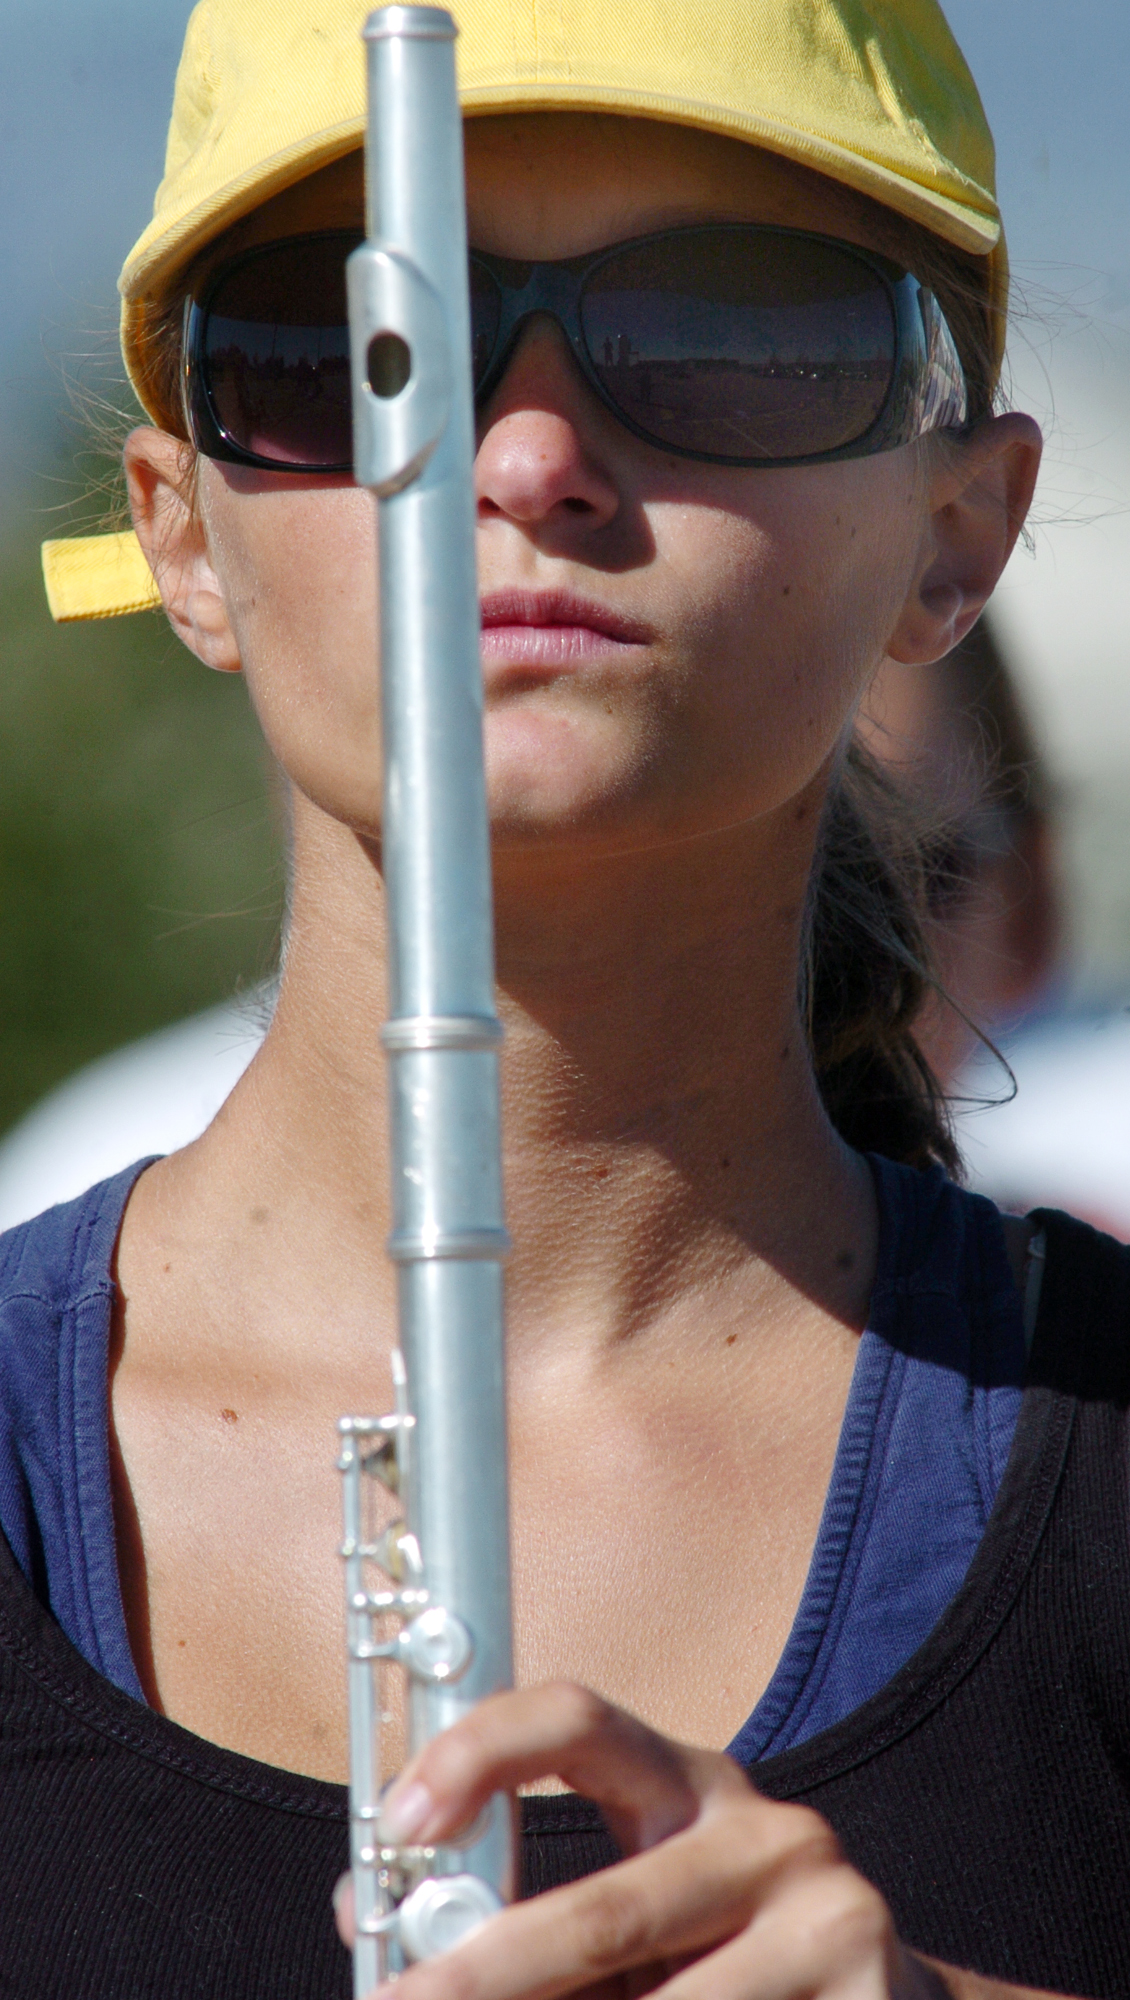 Hannah Wold, Legacy High School band member, steadies her flute while at attention during Saturday's practice at the school.<br /> <br /> September 25, 2010<br /> staff photo/David R. Jennings